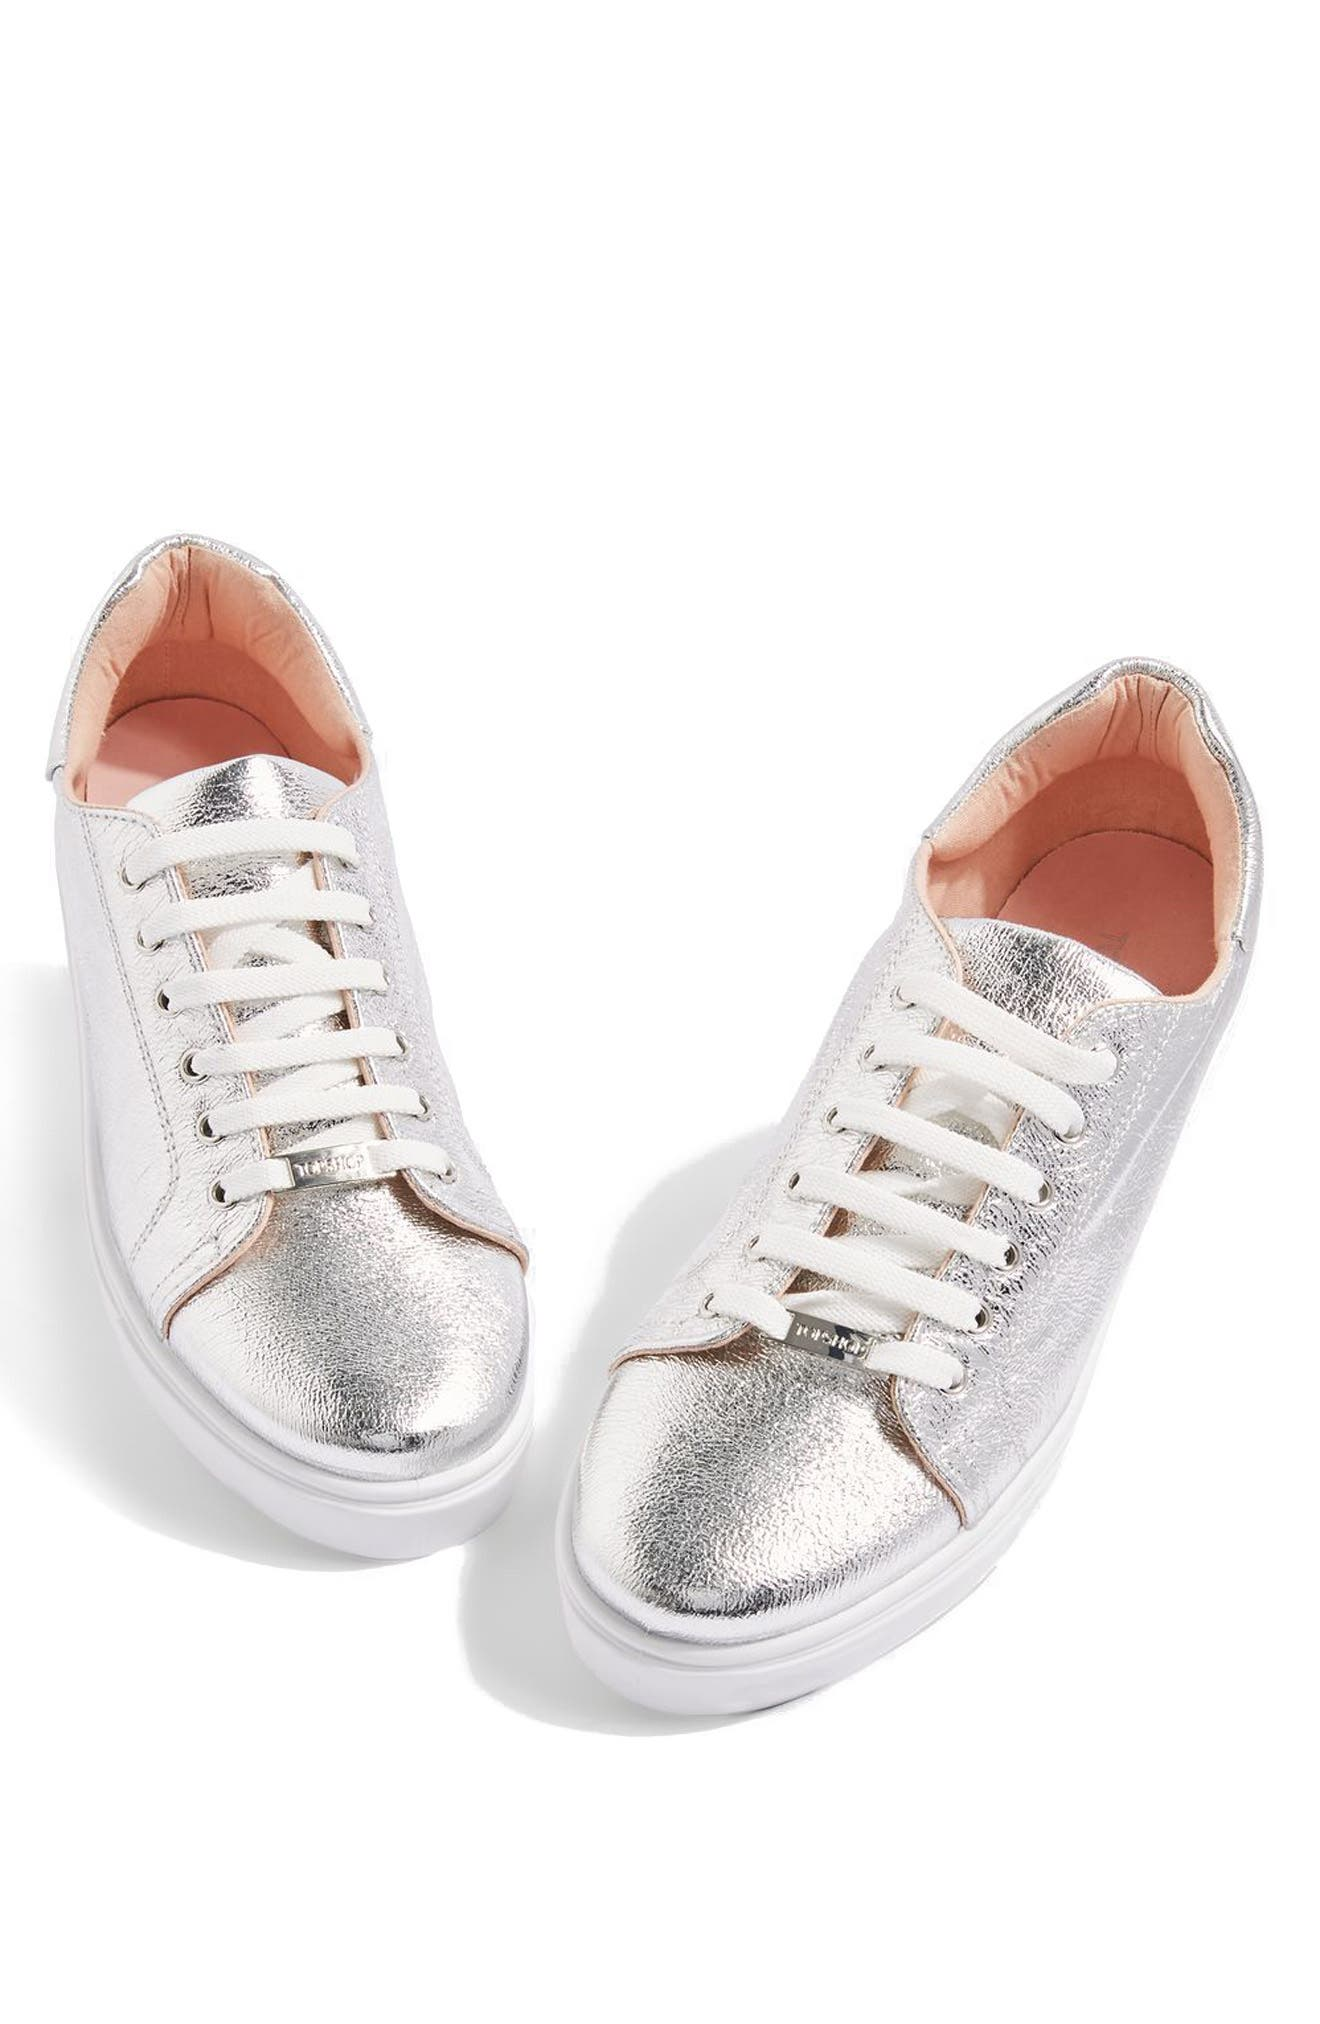 Cosmo Metallic Lace-Up Sneaker,                         Main,                         color, 040